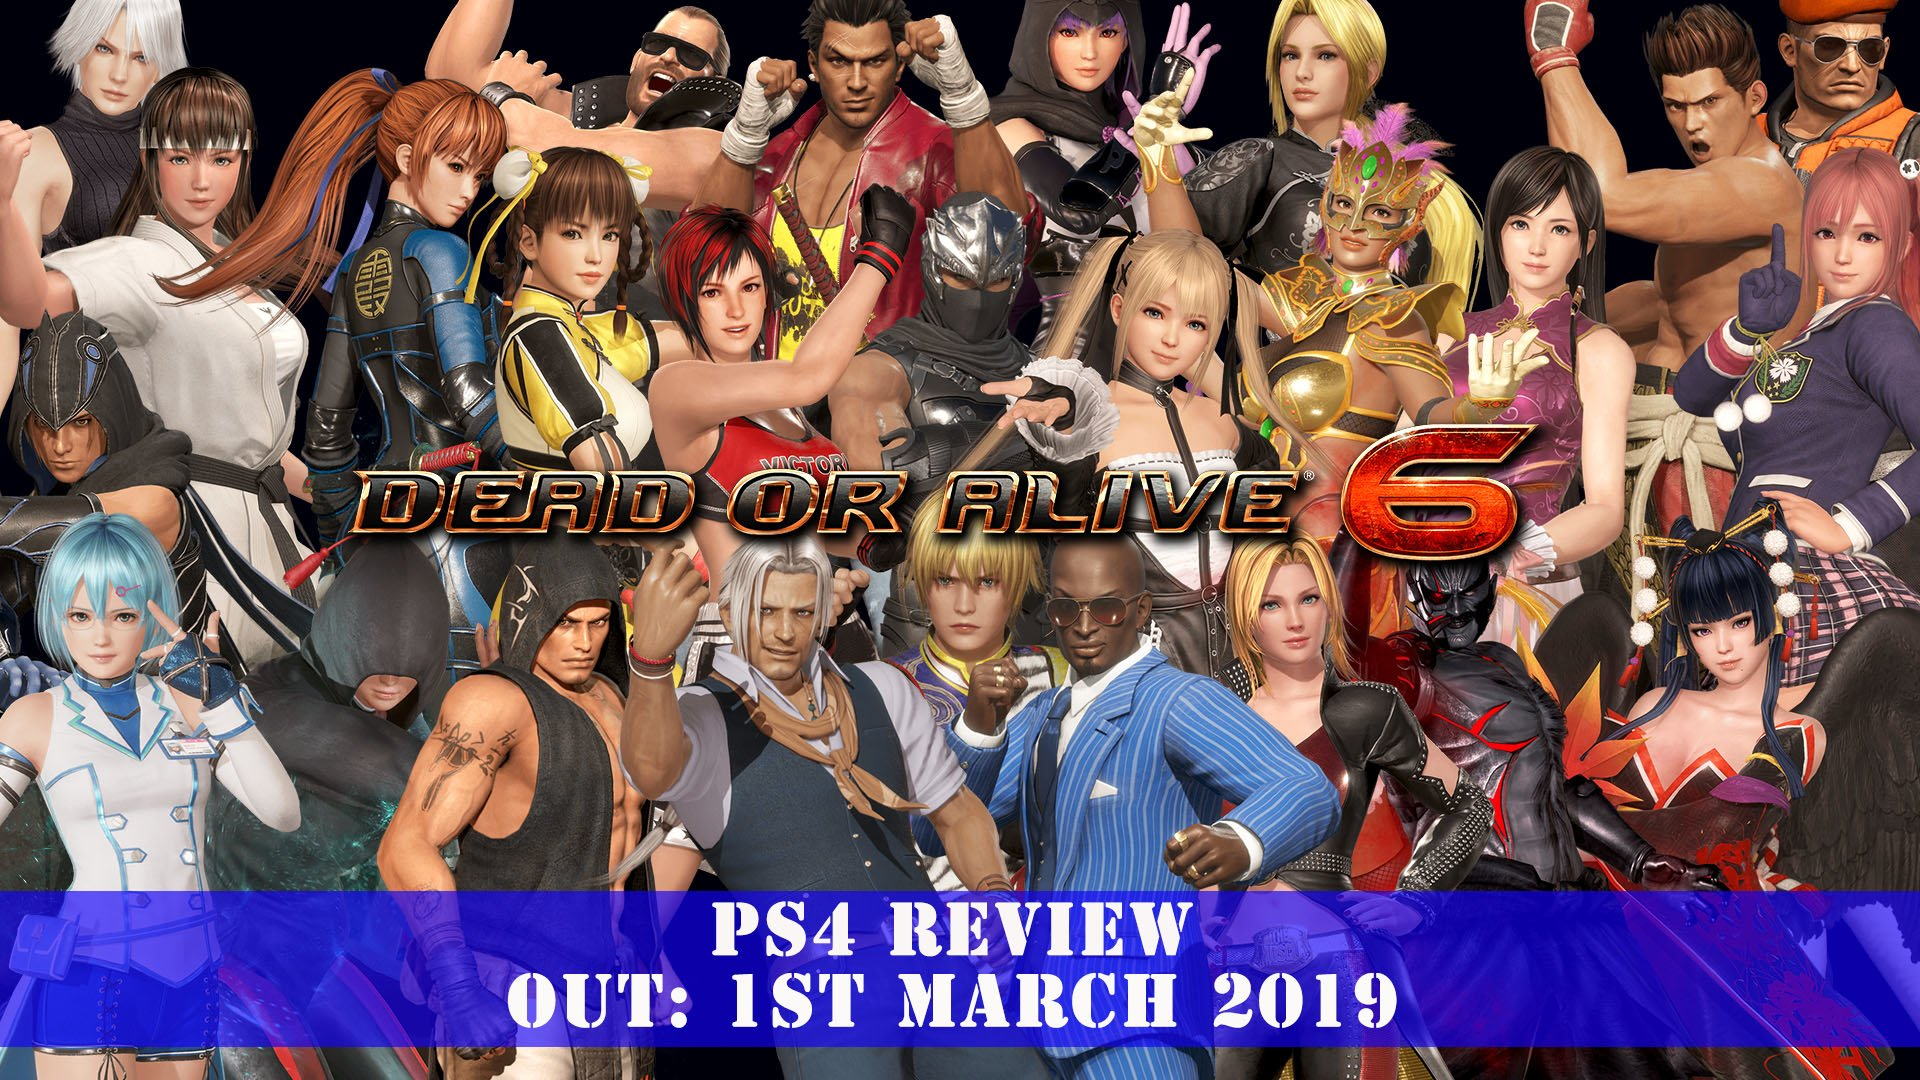 Dead or Alive 6 (PS4) Review